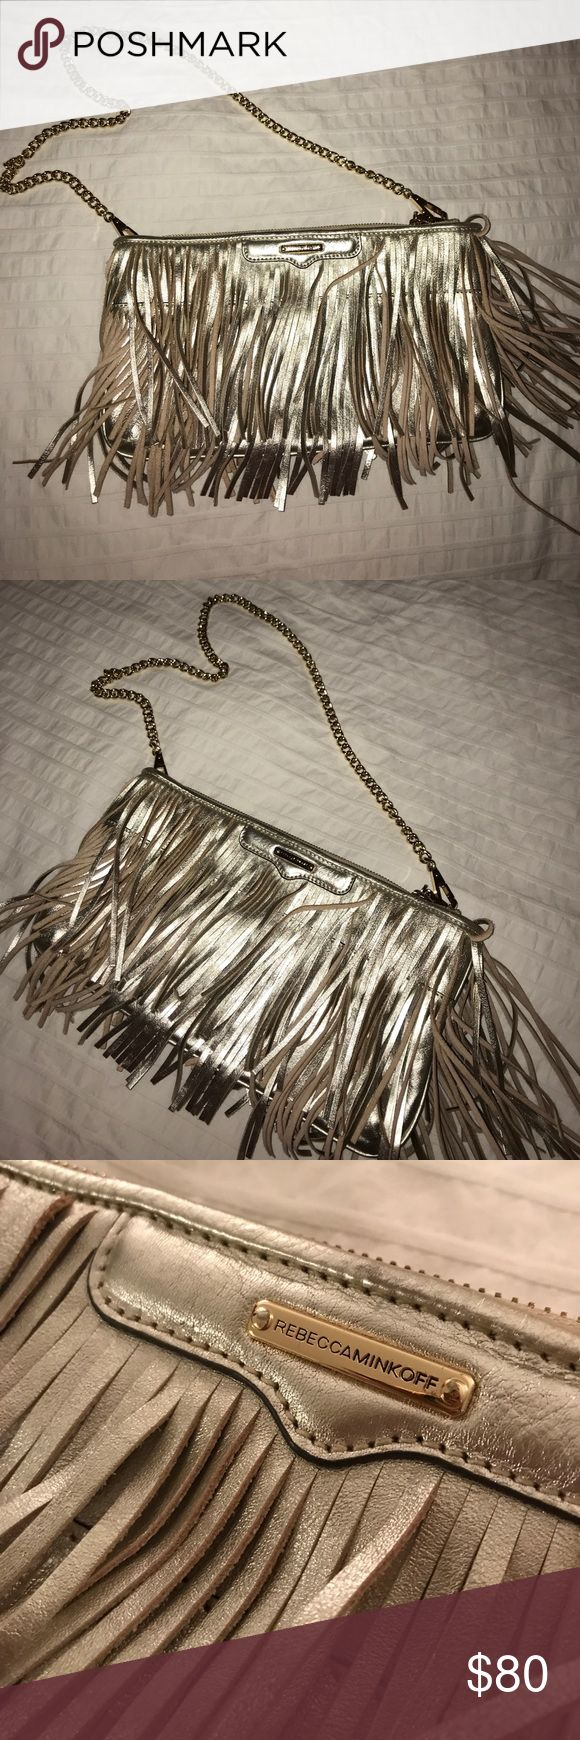 ✨Rebecca Minkoff Gold Metallic Fringe Purse✨ Fun, flirty, fringe purse! Great neutral color for all seasons!! *Used Once* Rebecca Minkoff Bags Shoulder Bags